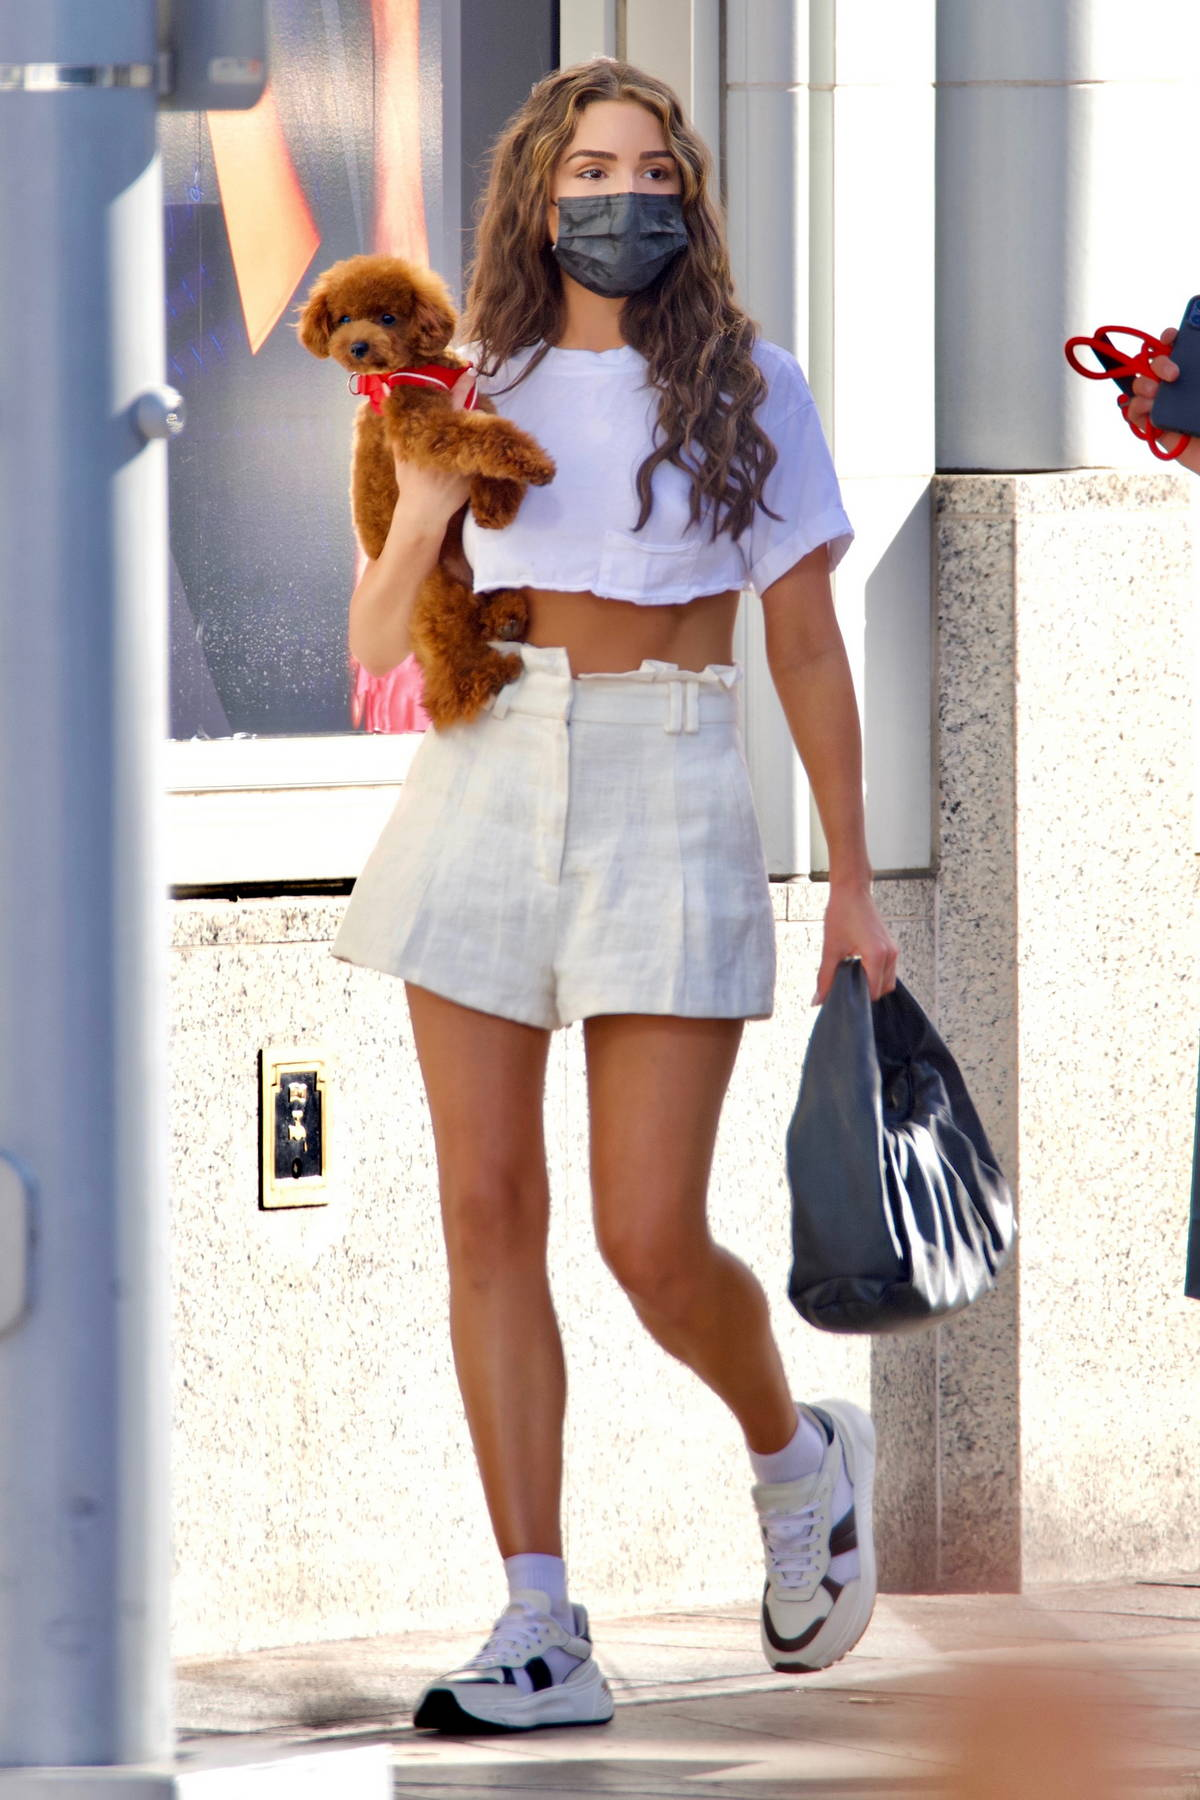 Olivia Culpo shows off her summer style in a cropped white tee and shorts while out with her puppy in Beverly Hills, California